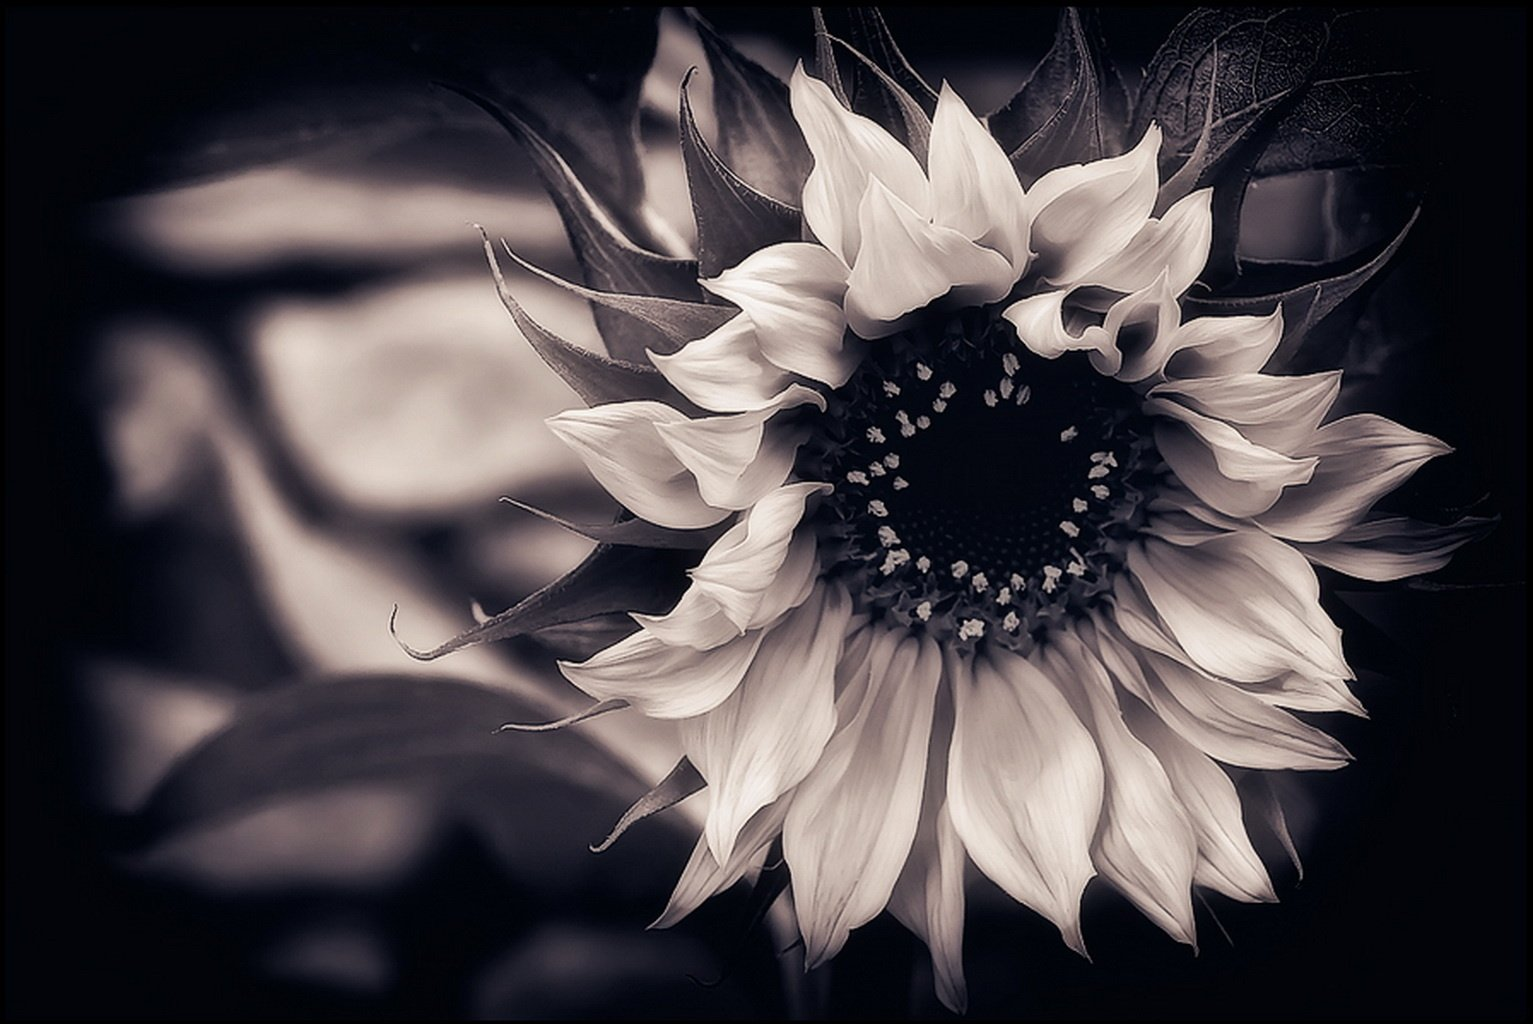 Wallpaper Download Wallpaper Sunflower Black And White Background 1533x1024